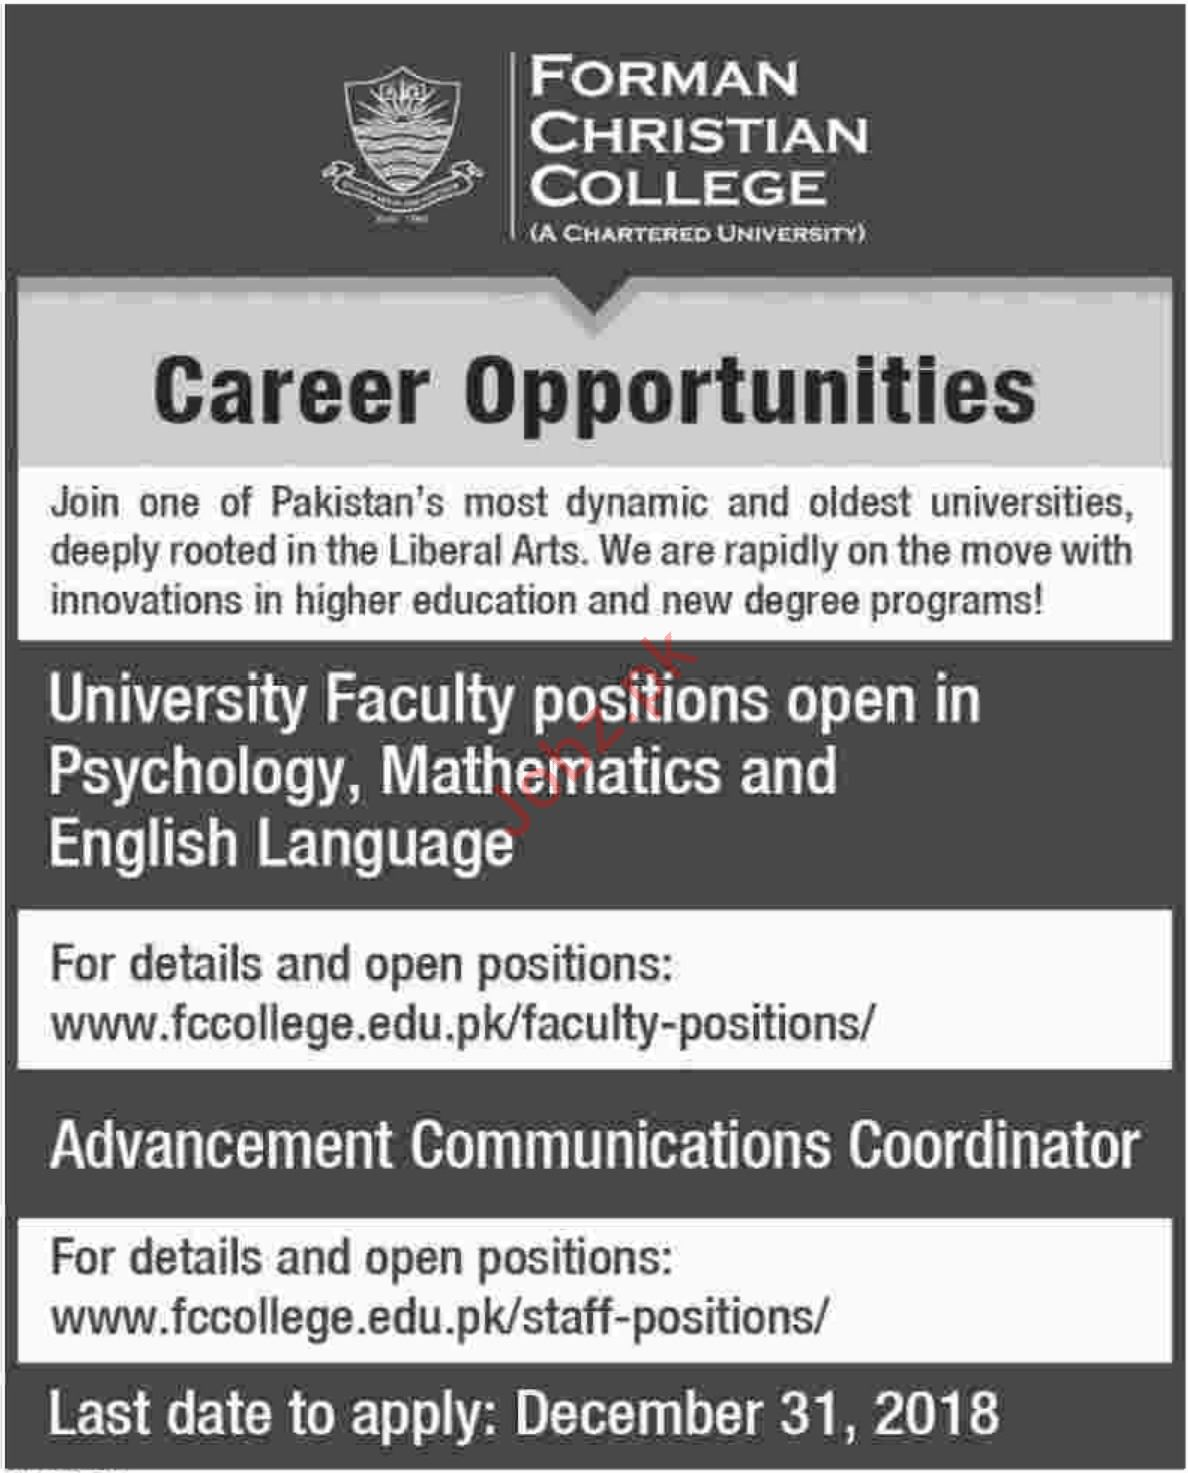 Forman Christian College Faculty Jobs 2019 in Lahore